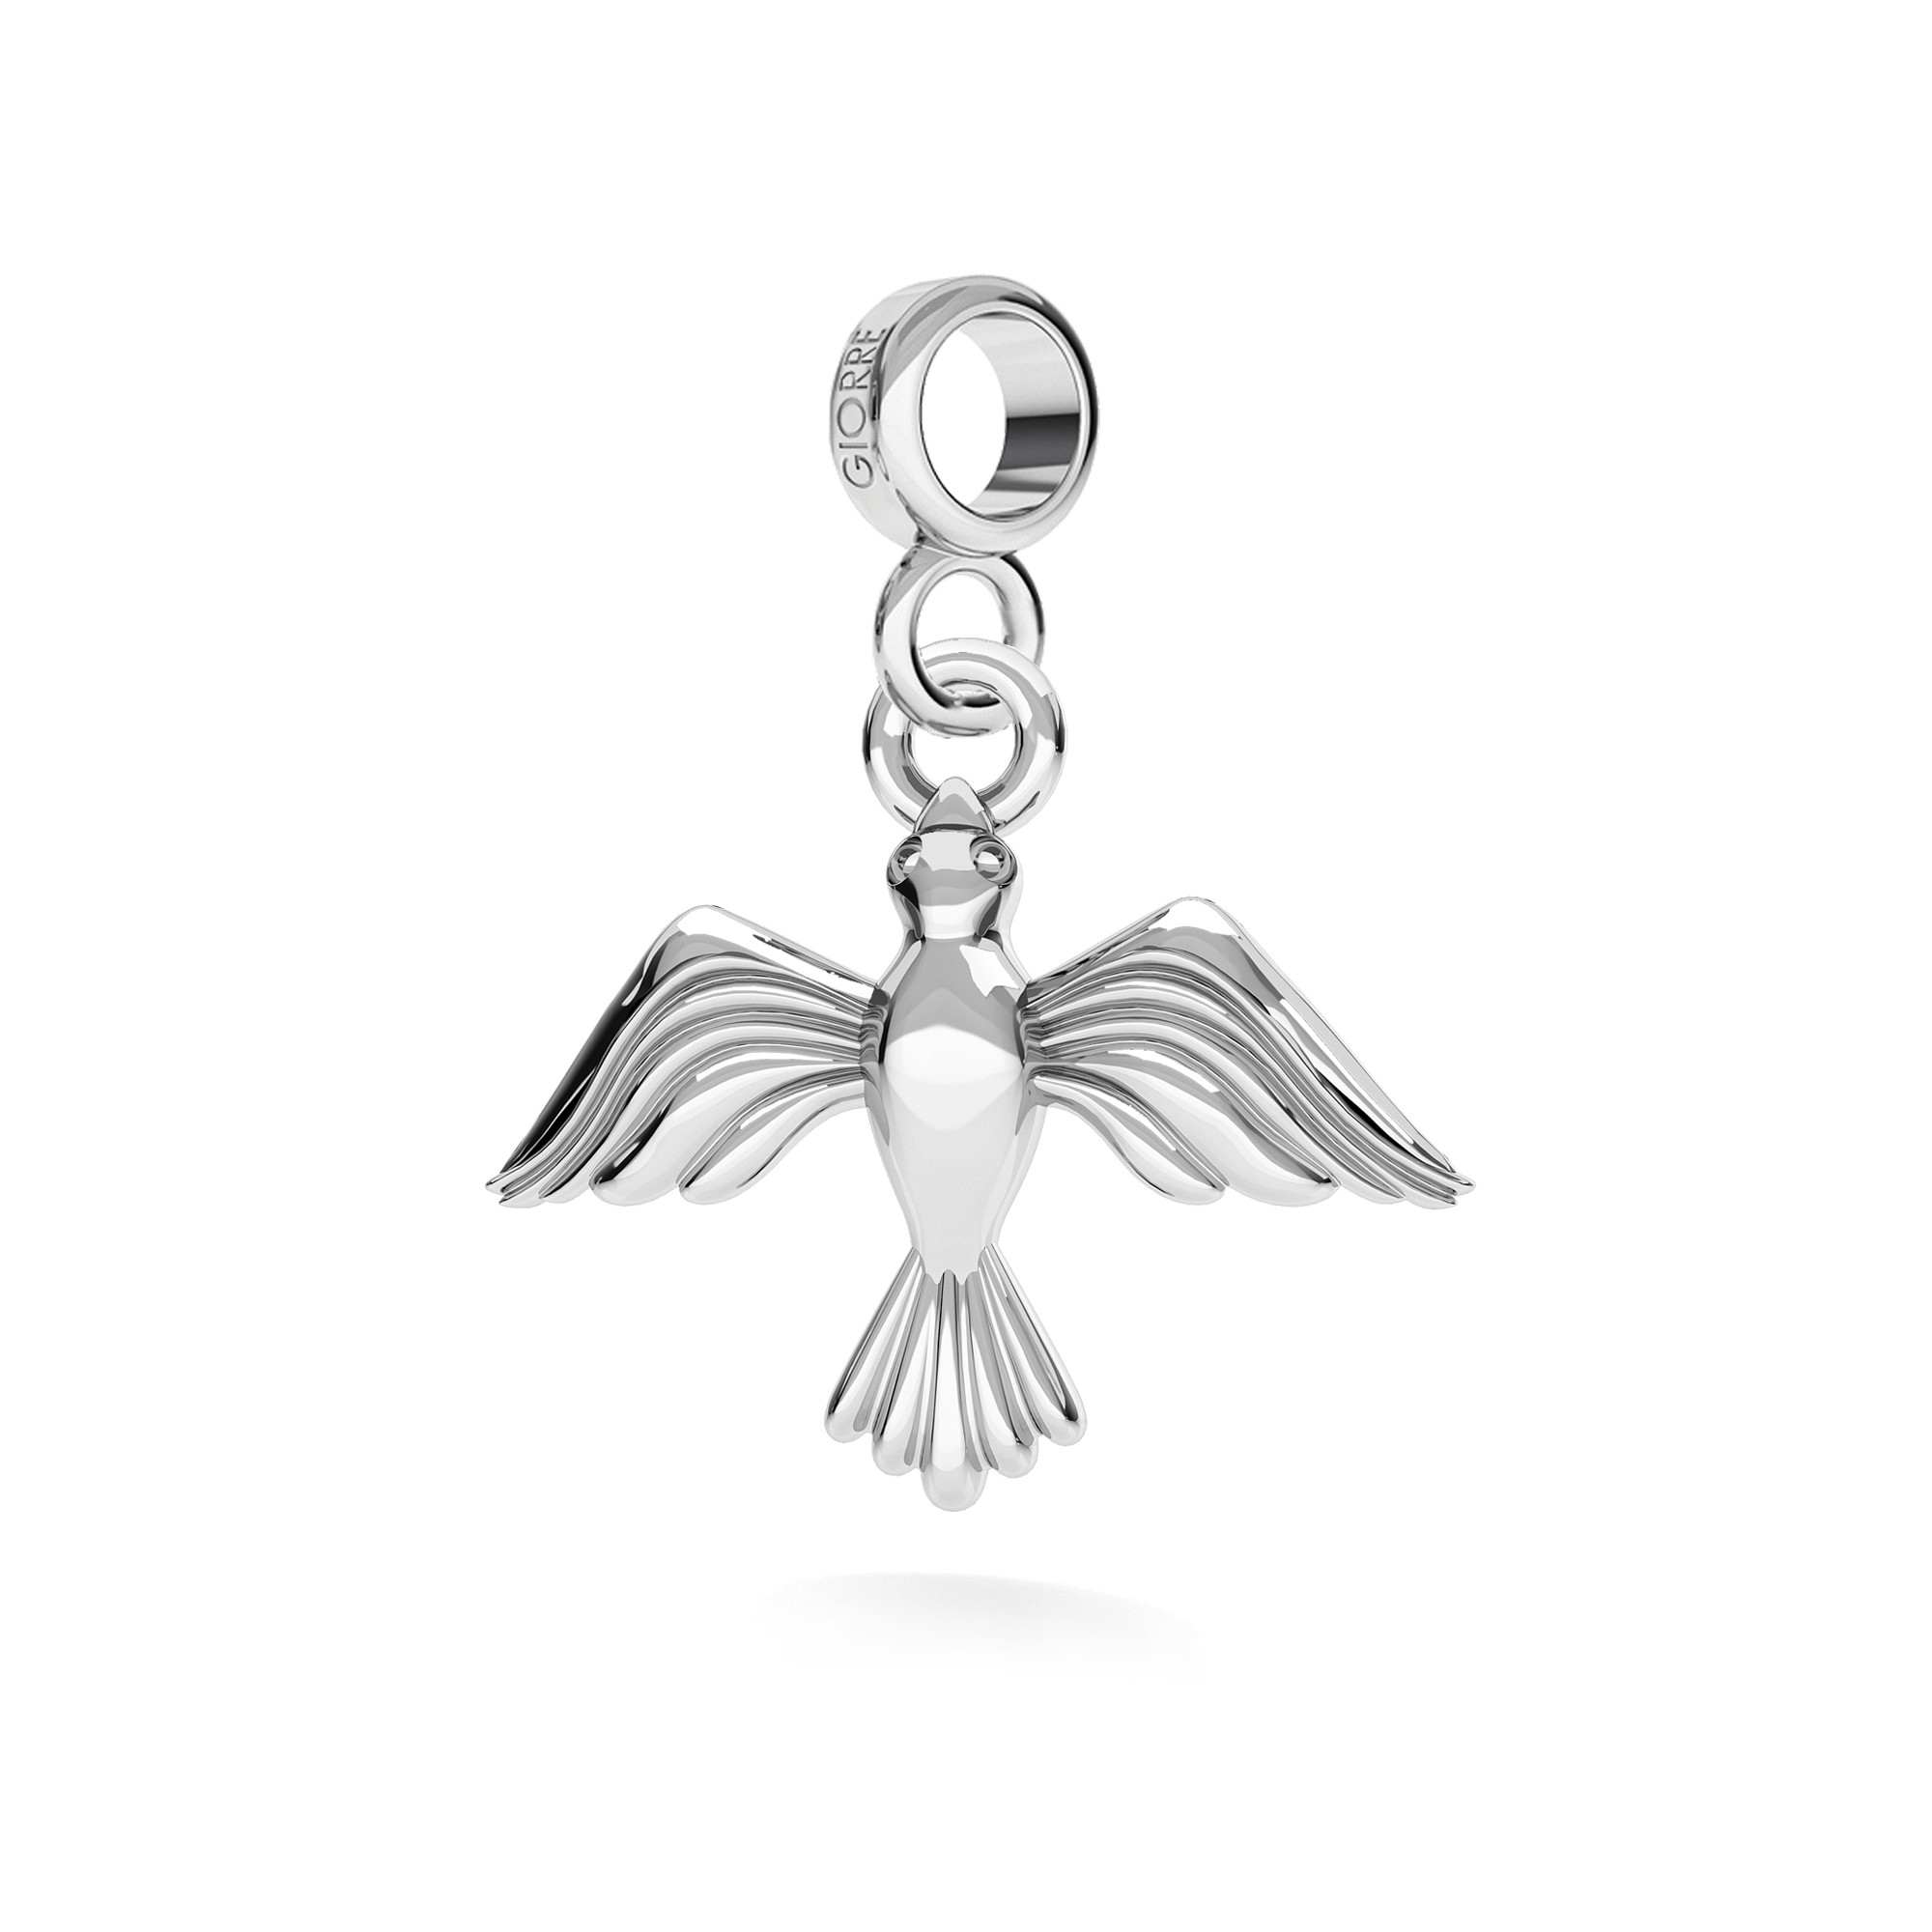 Feuille charms pendentif argent 925